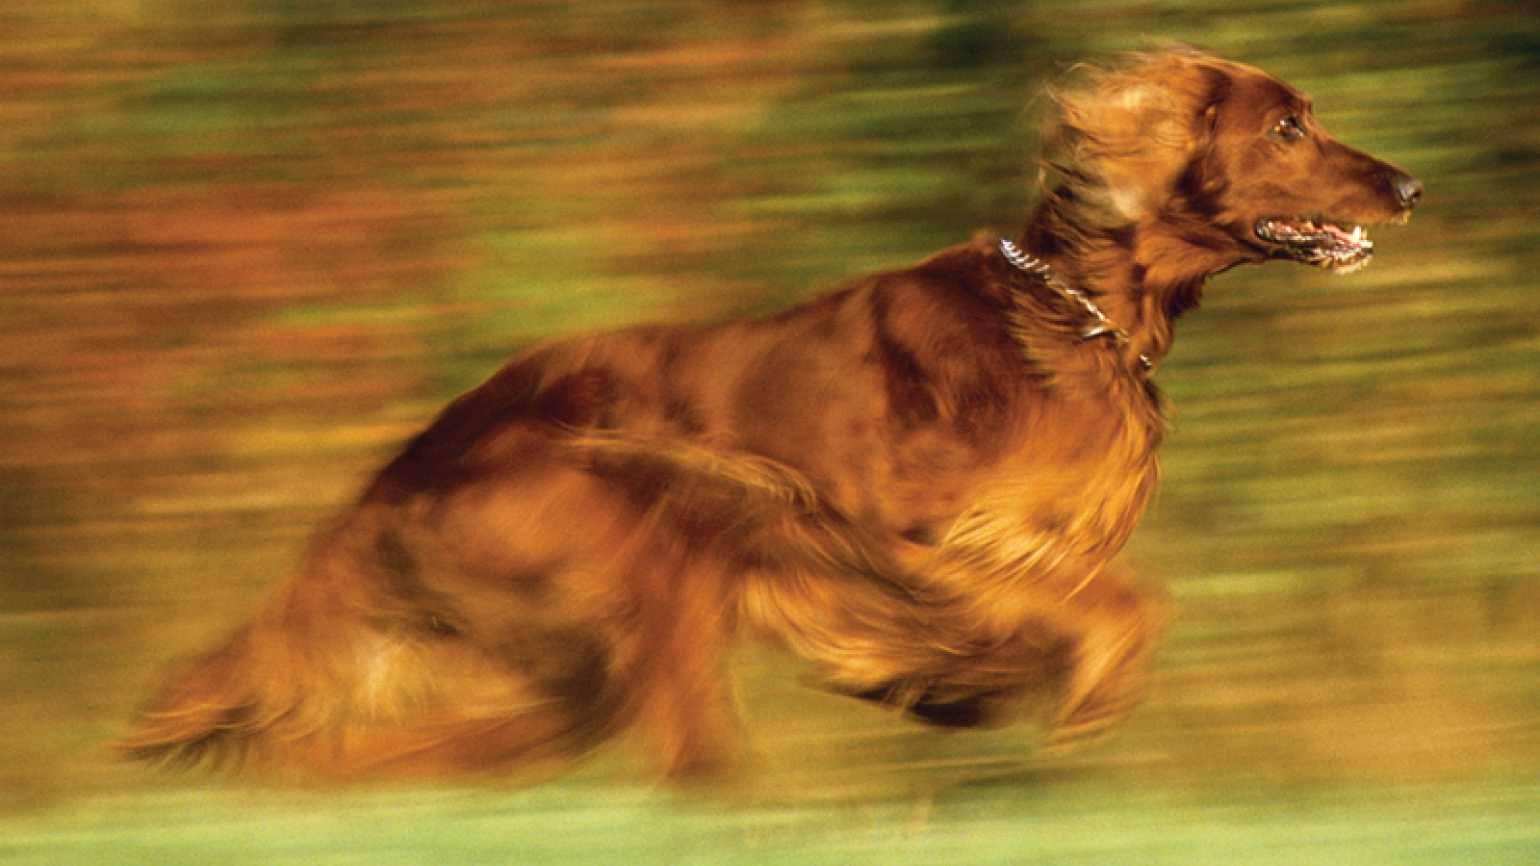 A photo of an Irish setter running across a field